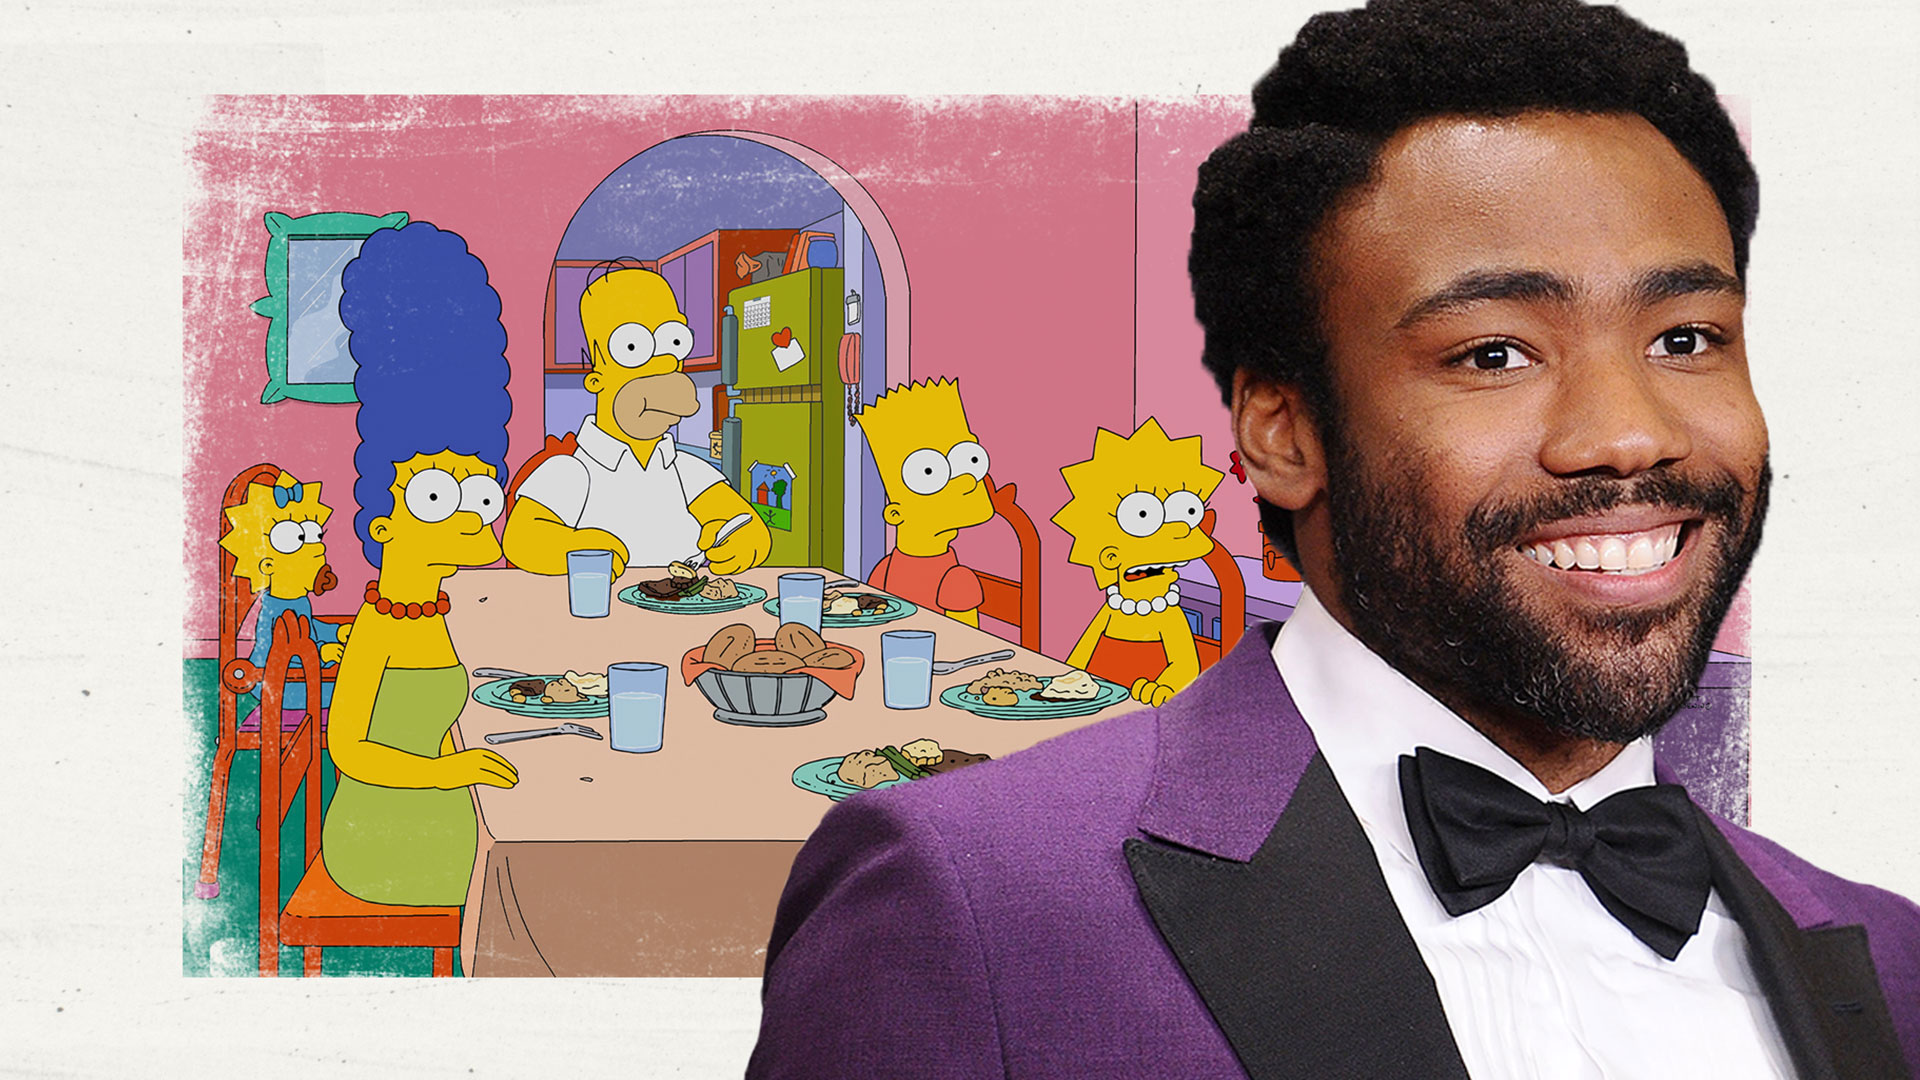 Biography: Donald Glover